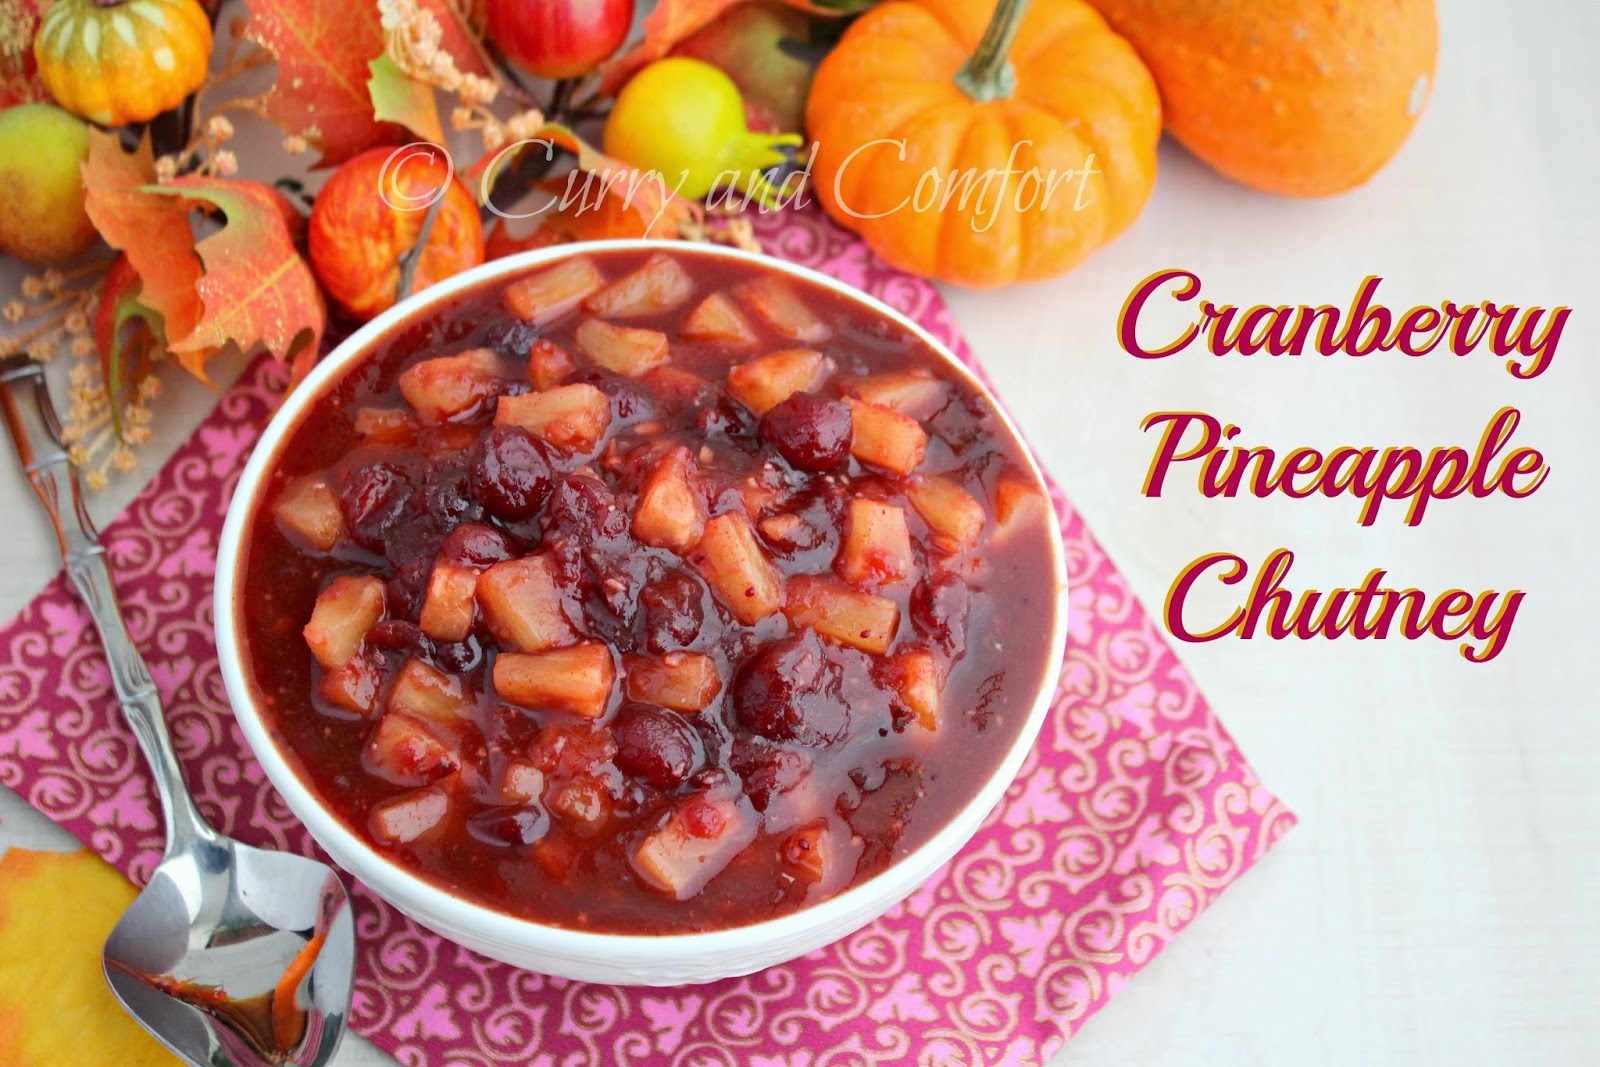 Kitchen Simmer: Spicy and Quick Cranberry Pineapple Chutney